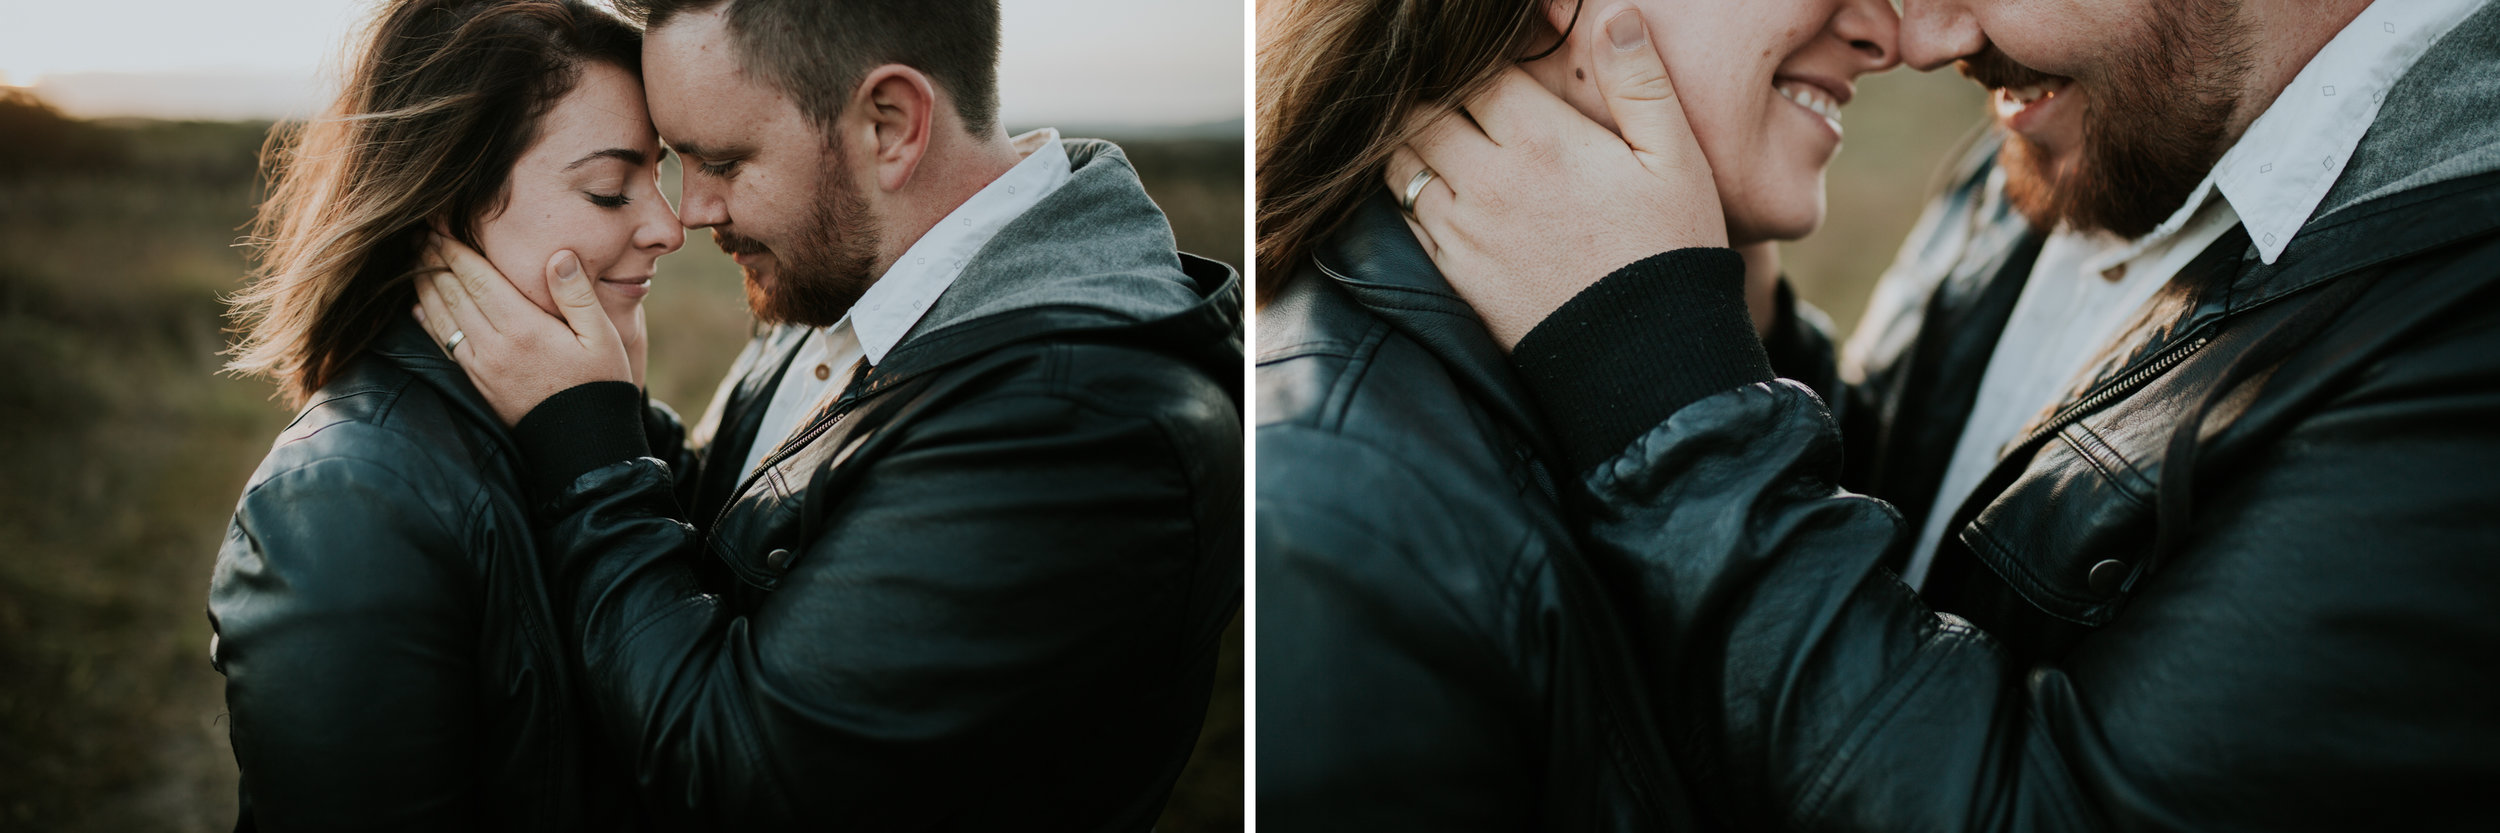 Sarah+Grant+Anniversary+Couple+session+Southern+highlands-14.jpg